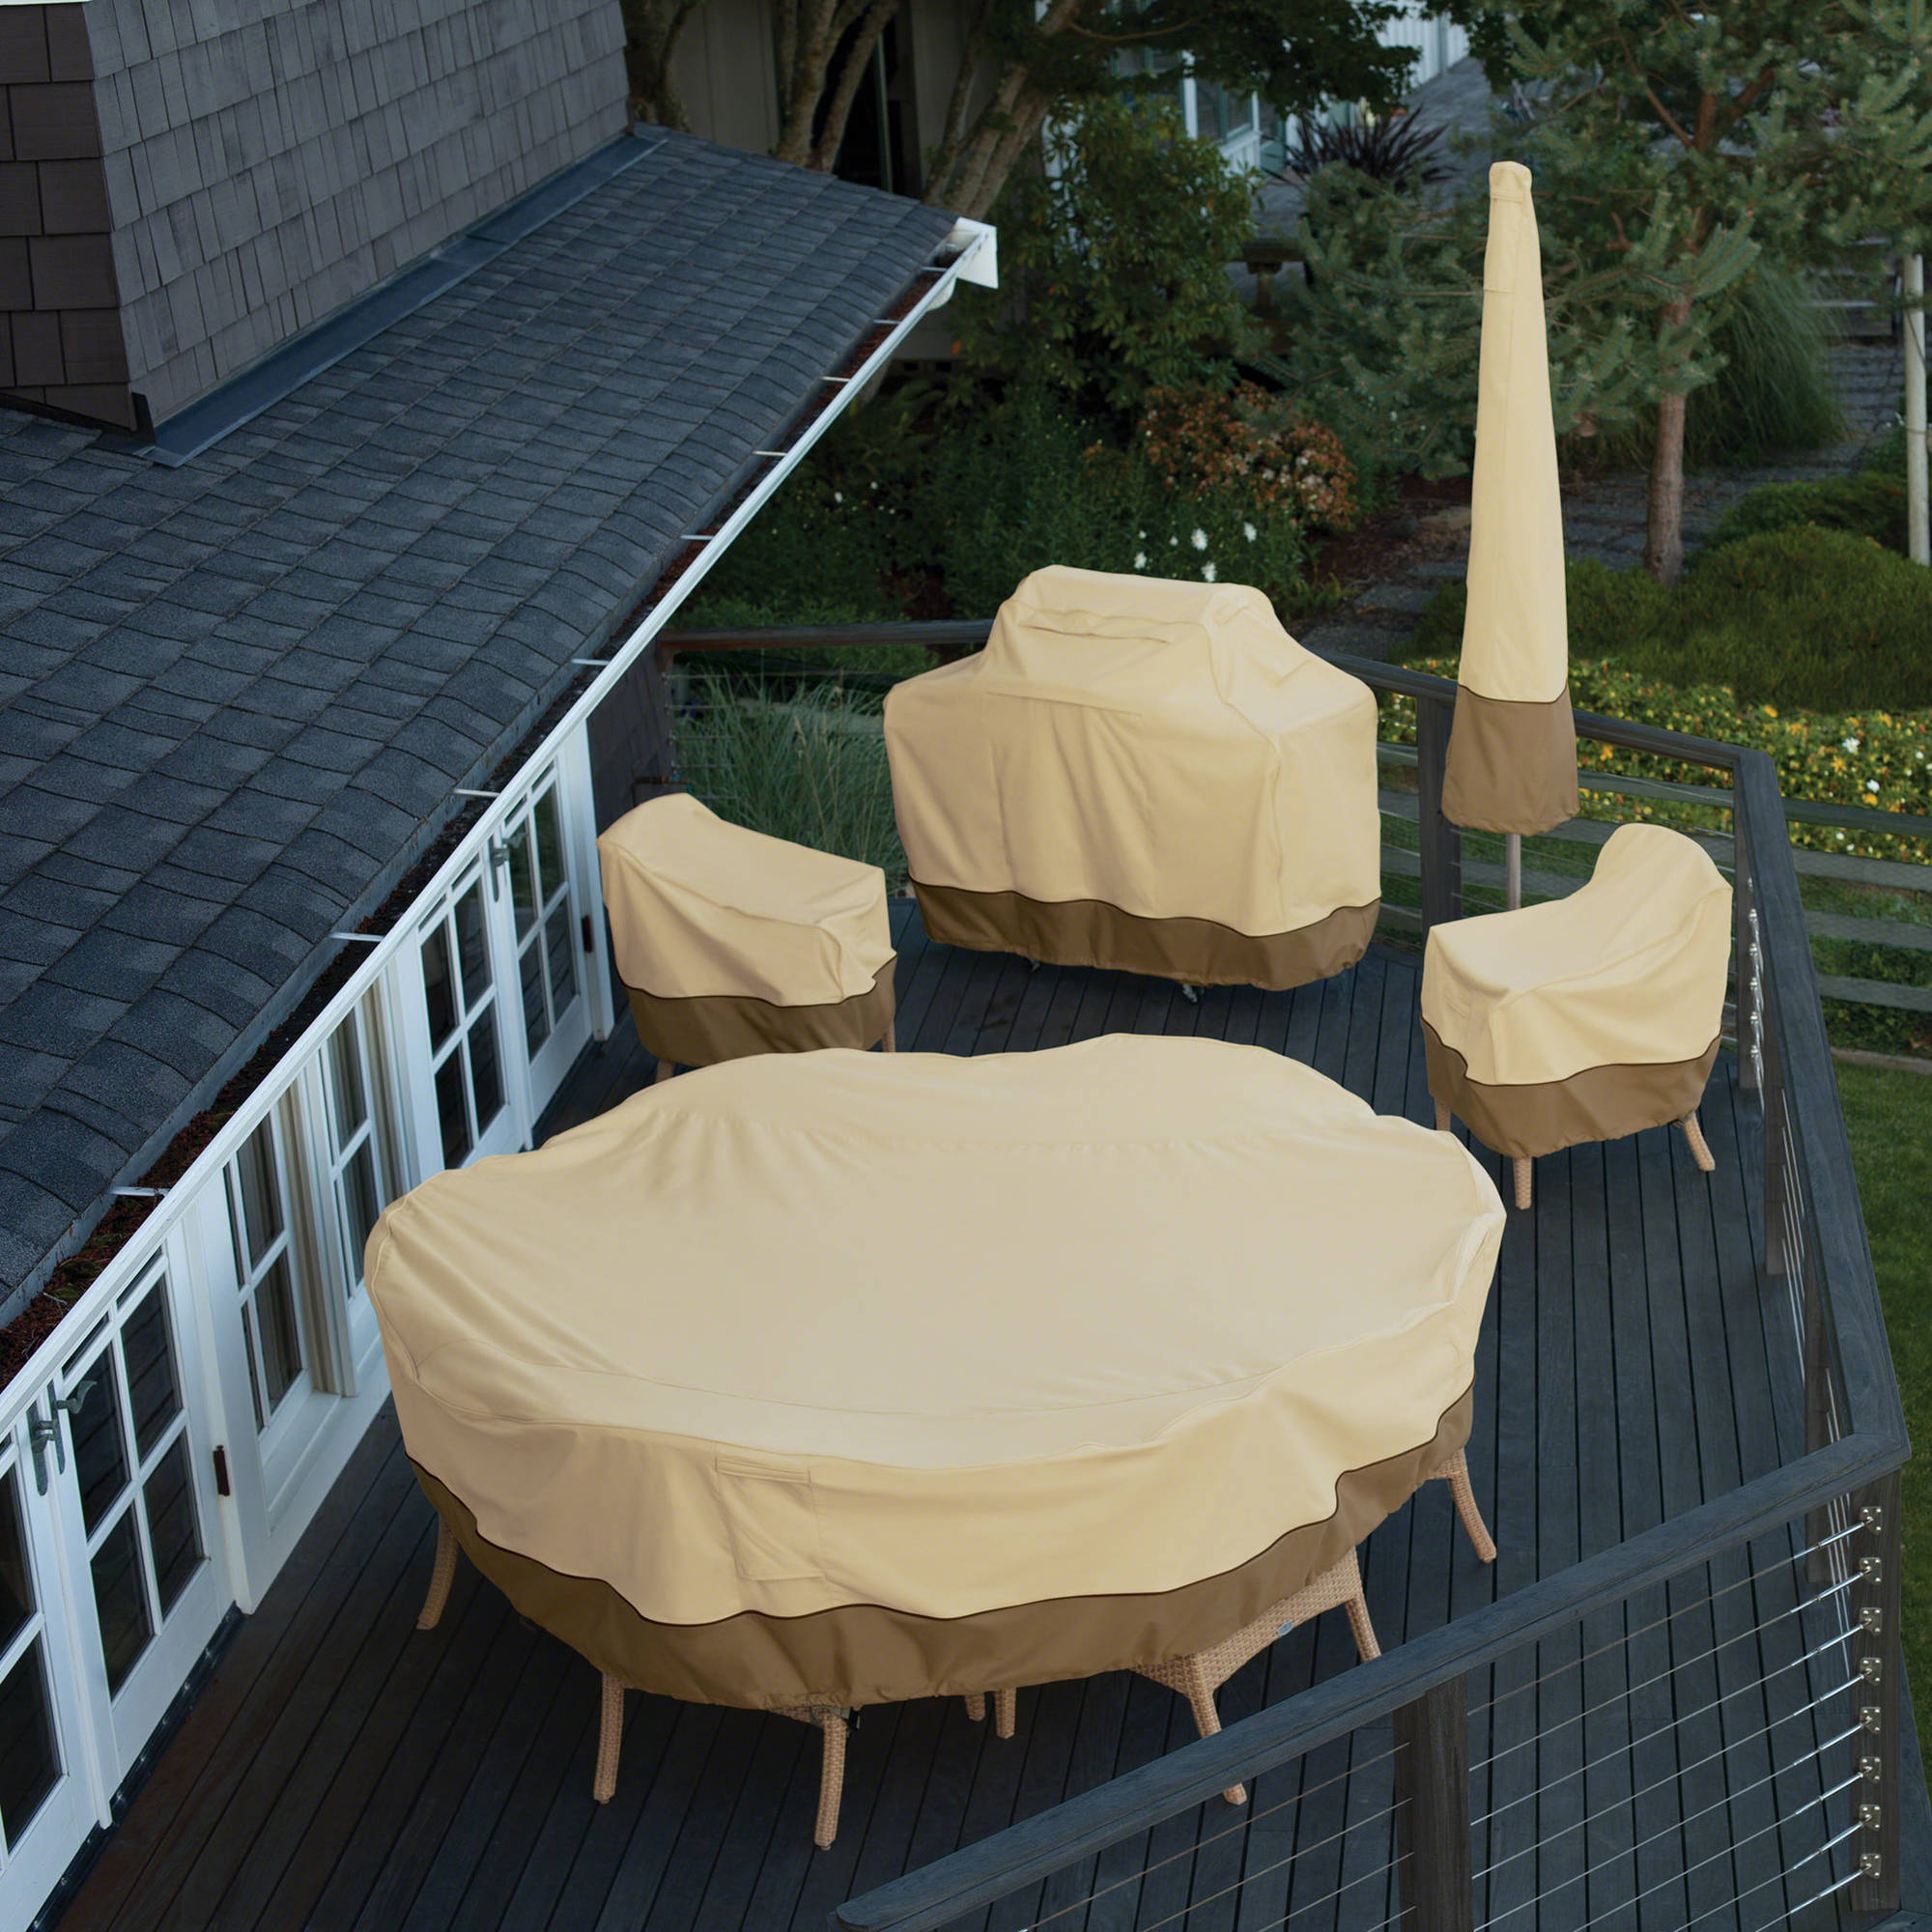 Classic Accessories Veranda Tall Round Patio Table And Chair Set Furniture  Storage Cover, Fits Up To 60 Good Looking